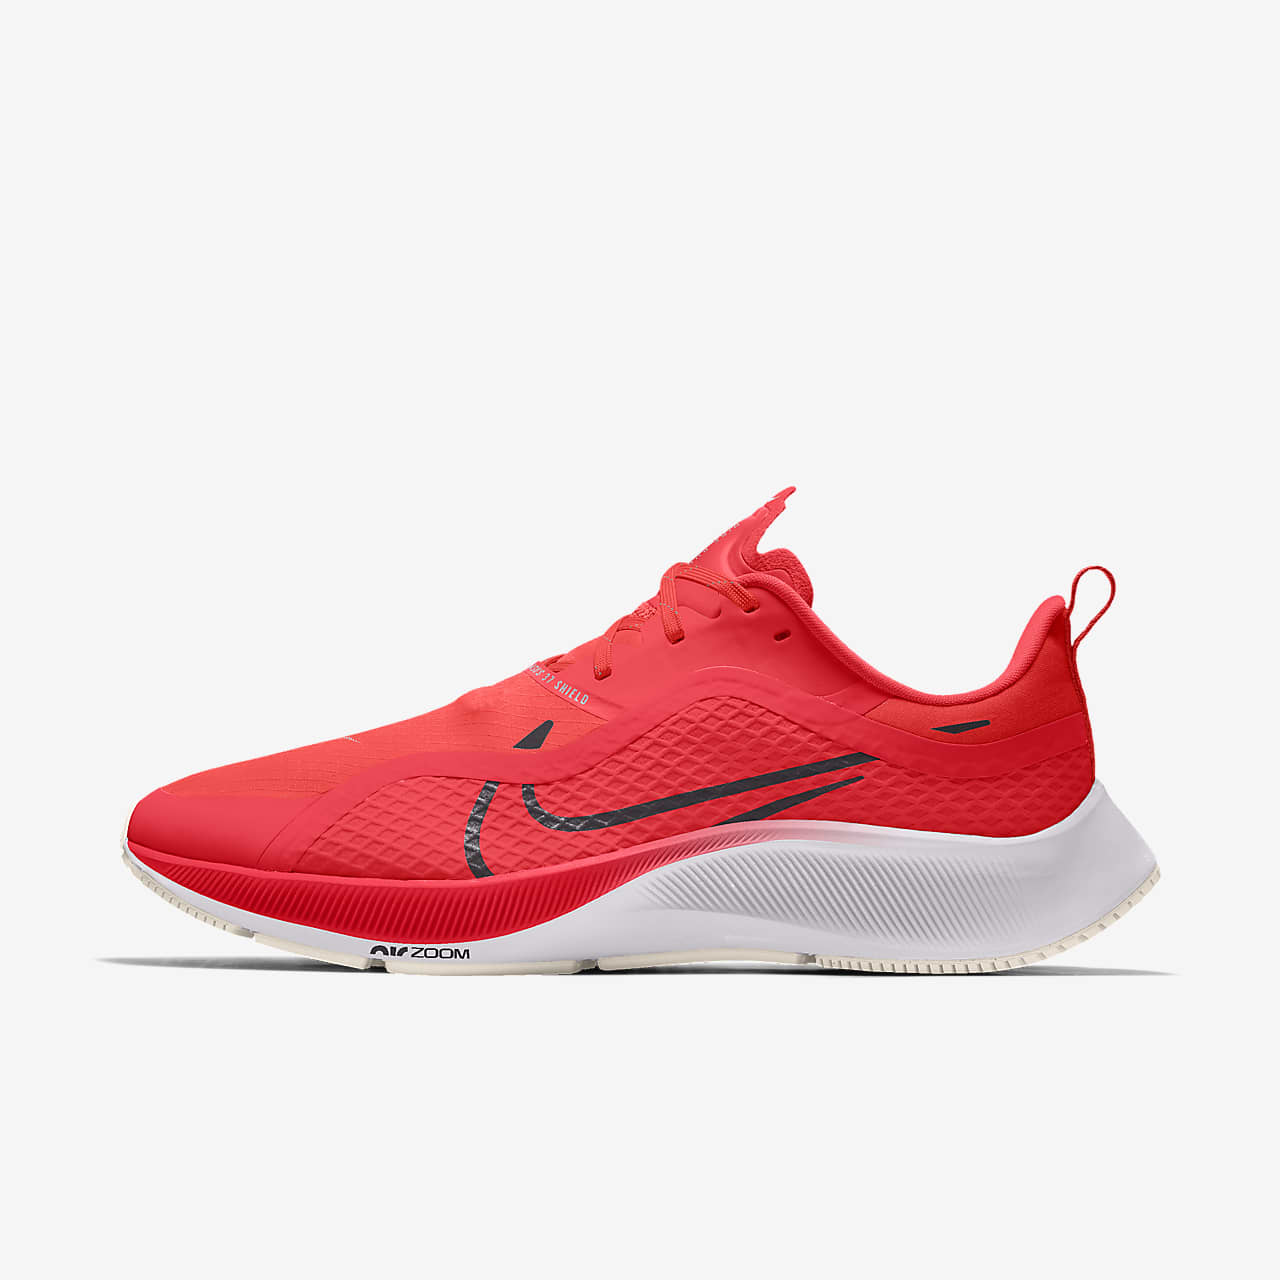 Chaussure de running personnalisable Nike Air Zoom Pegasus 37 Shield By You